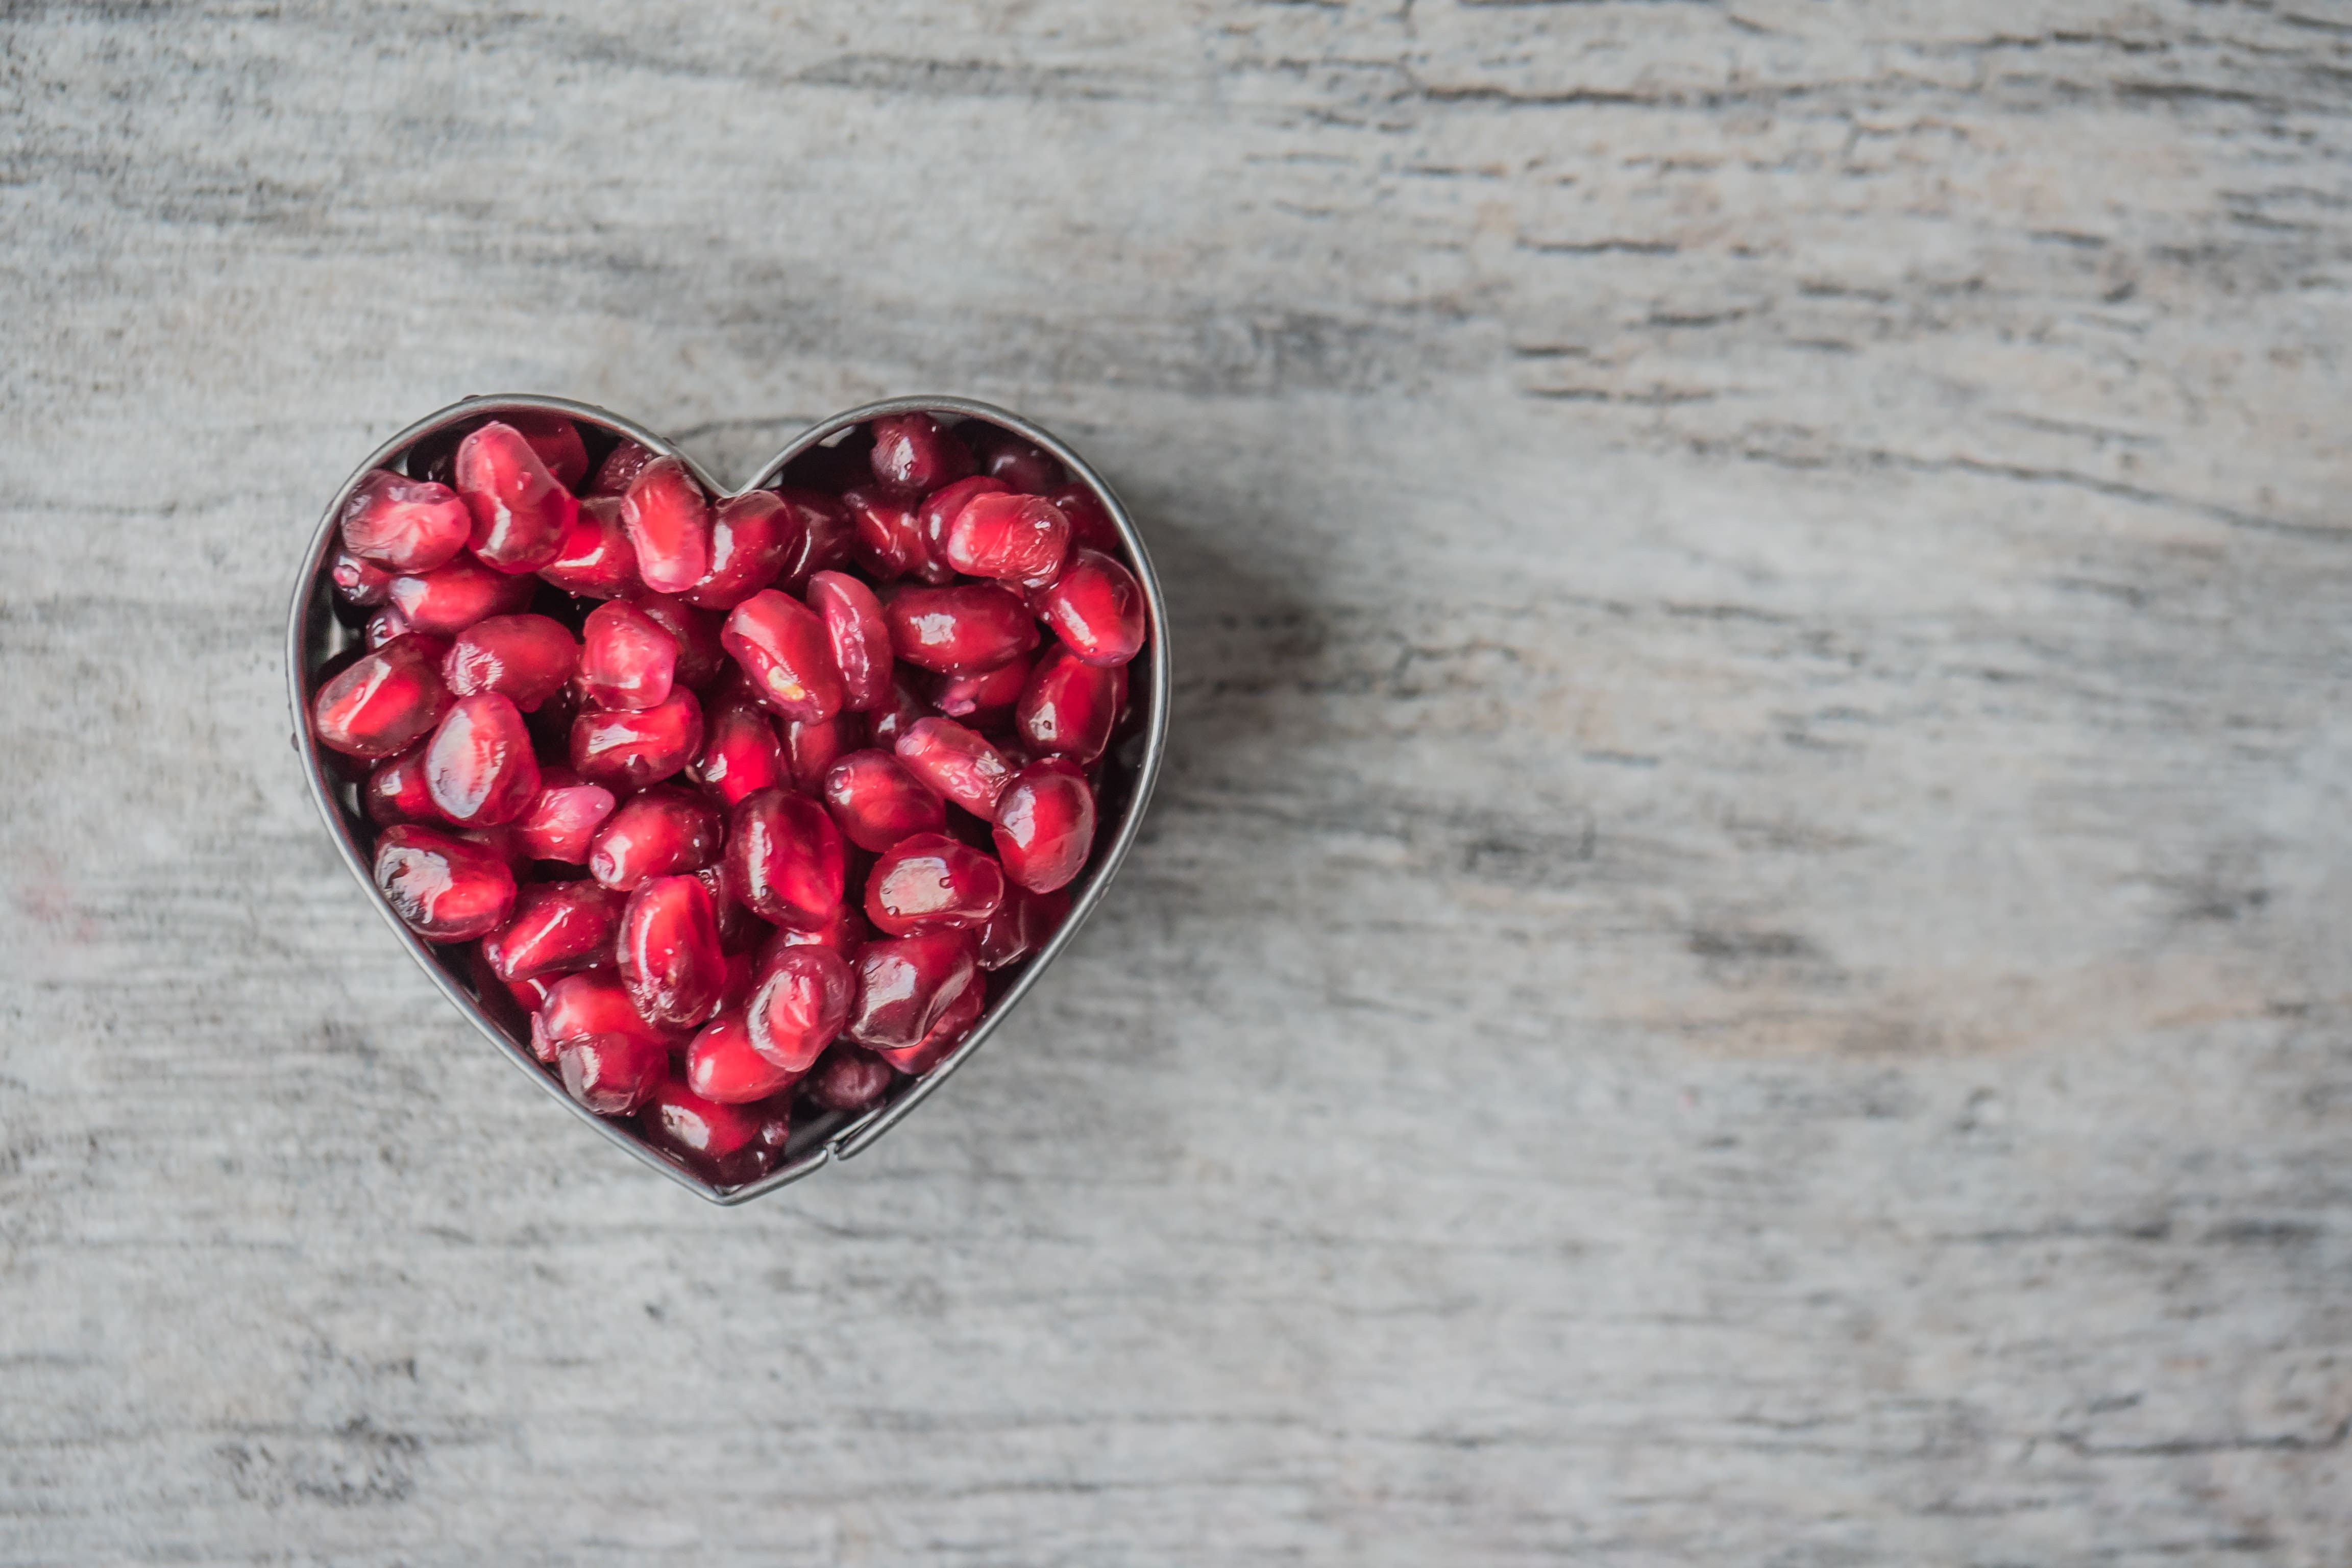 Pomegranate seeds within a heart-shaped-cake-cutter on a grey wooden background